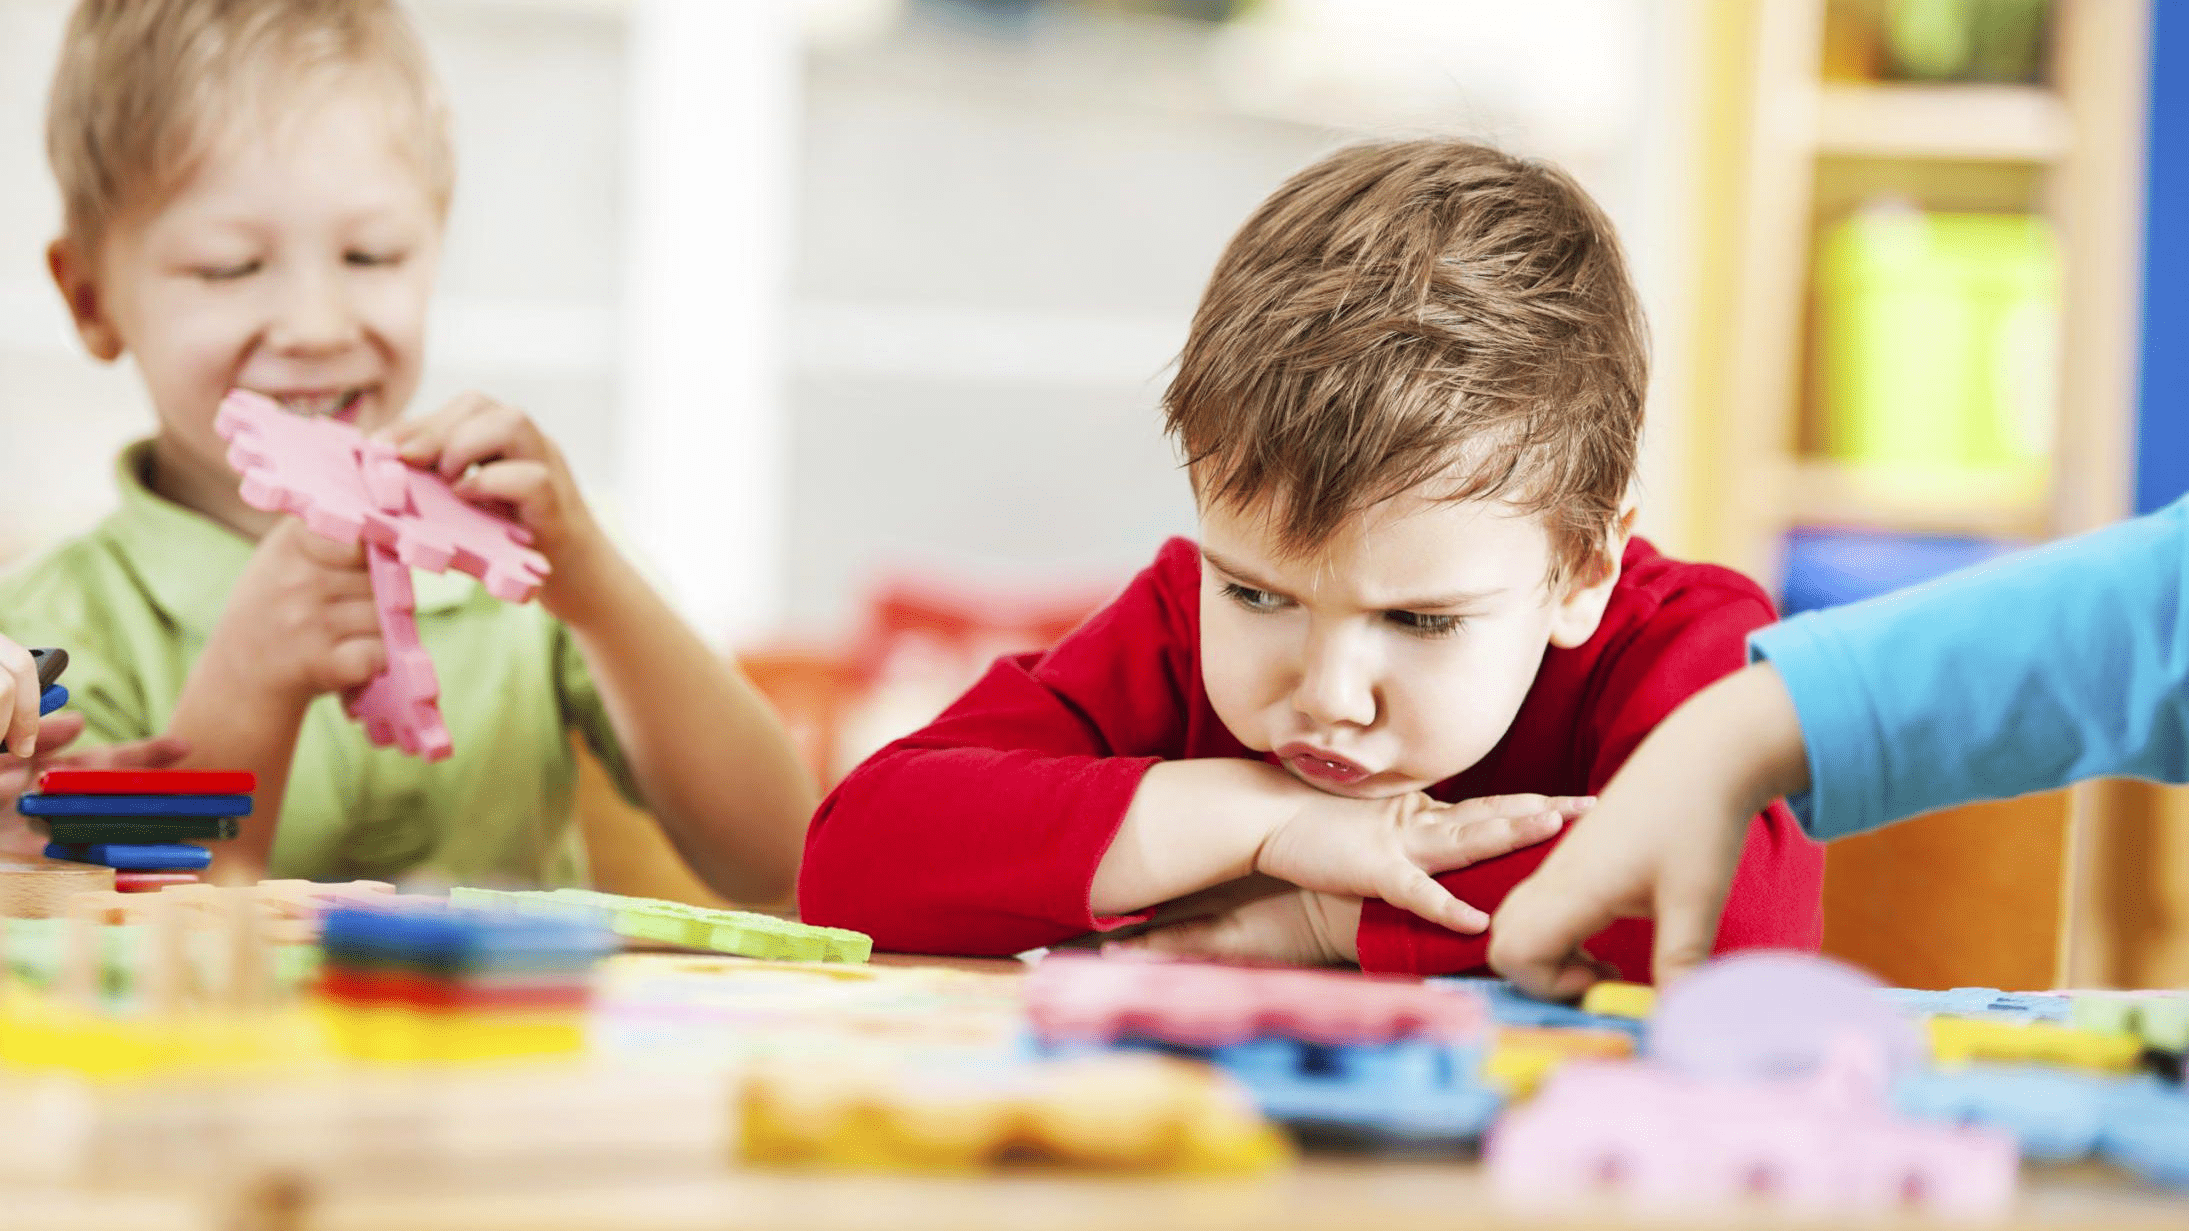 Child Is Under Frequent Frustration